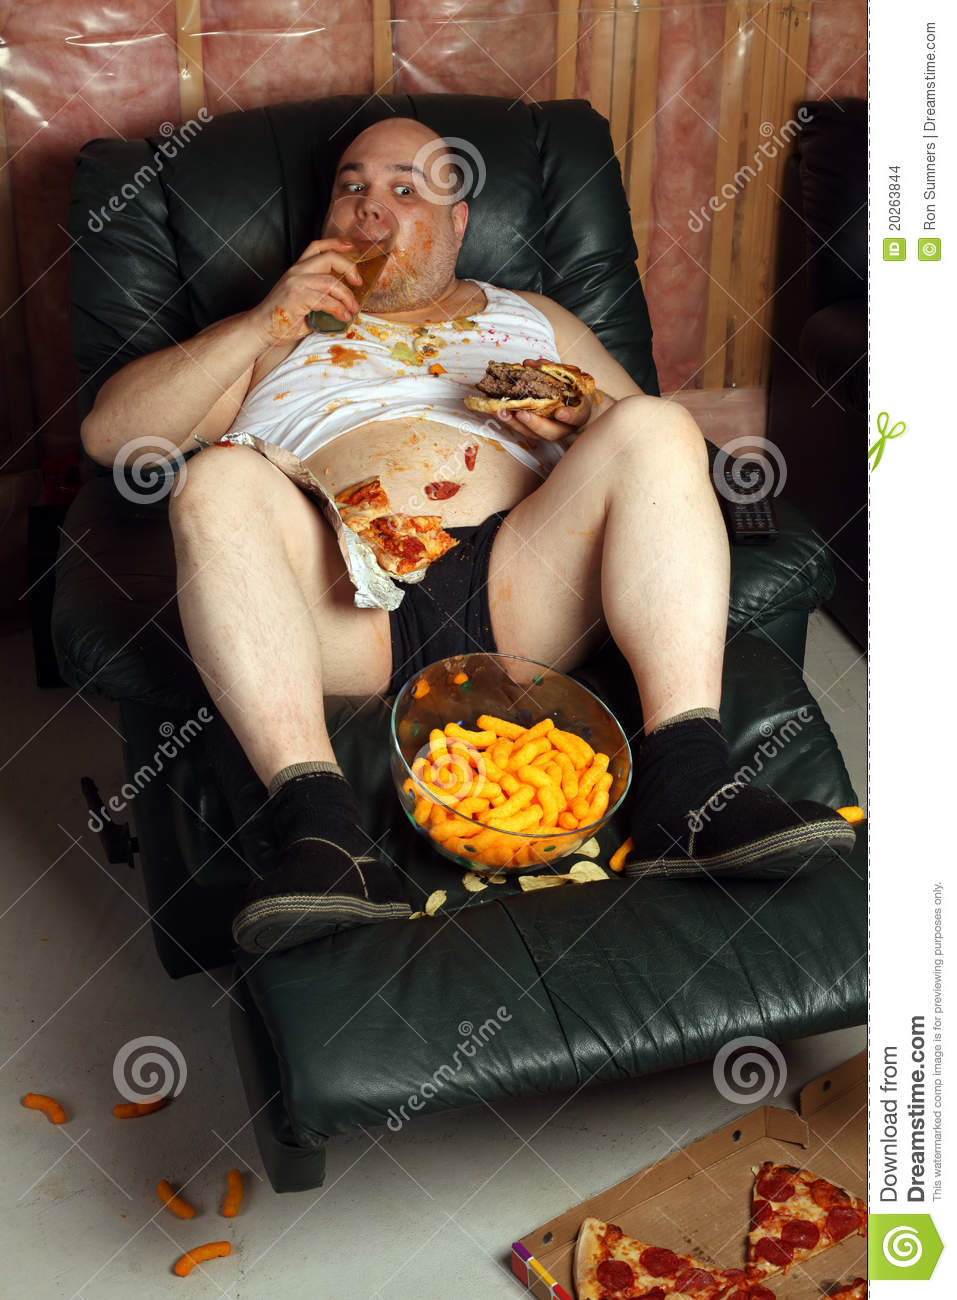 Hamburger Eating Lazy Couch Potato Stock Photo Image